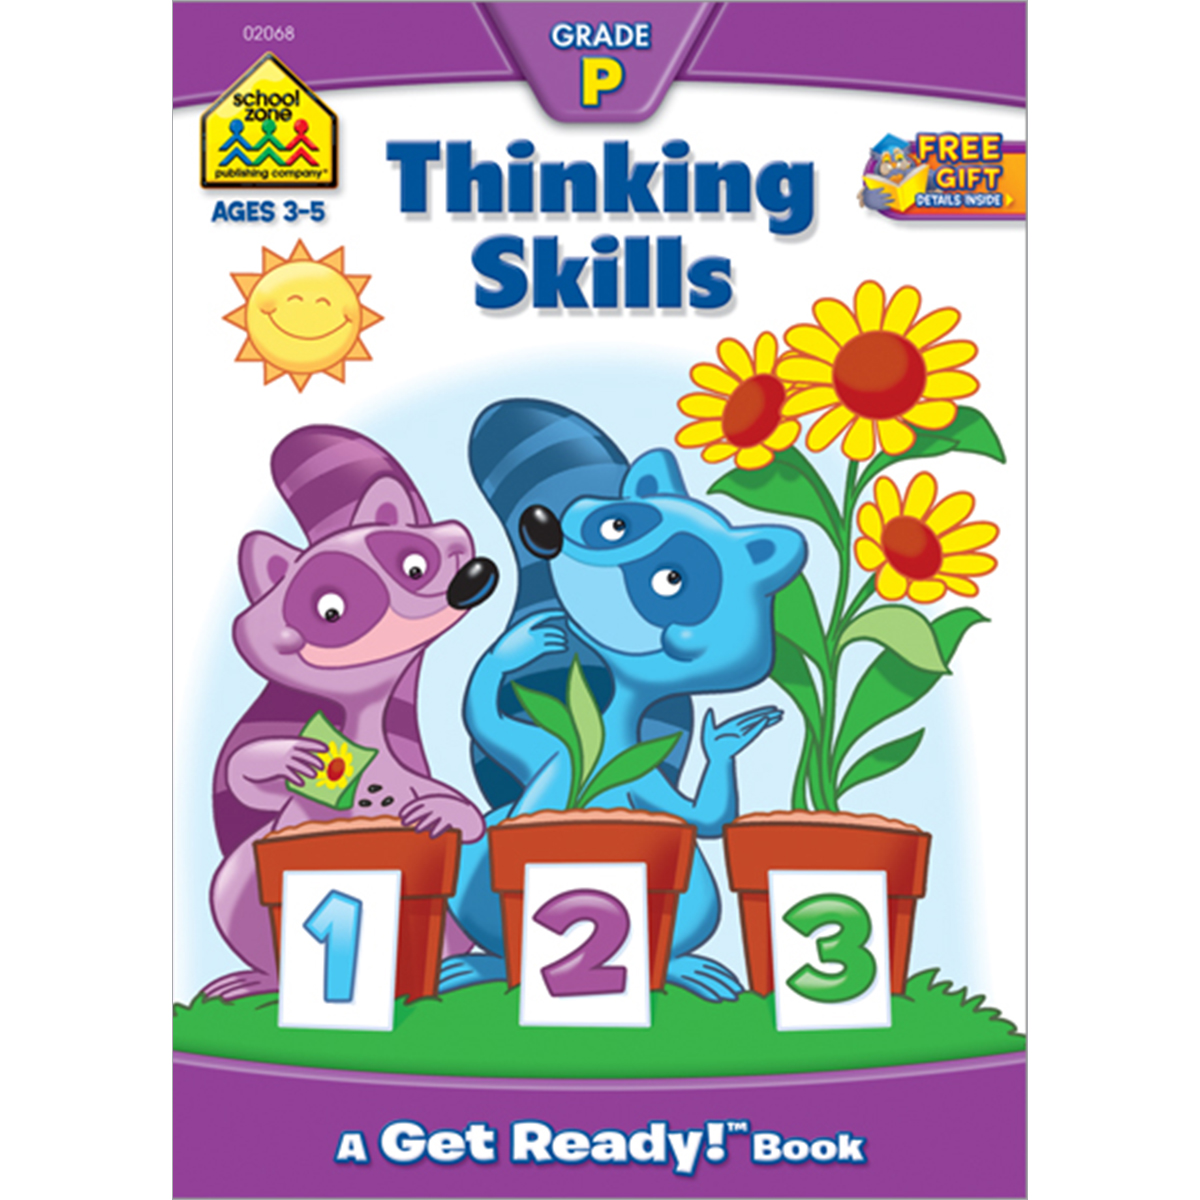 School Zone Preschool Workbooks 32 Pages-Thinking Skills by School Zone